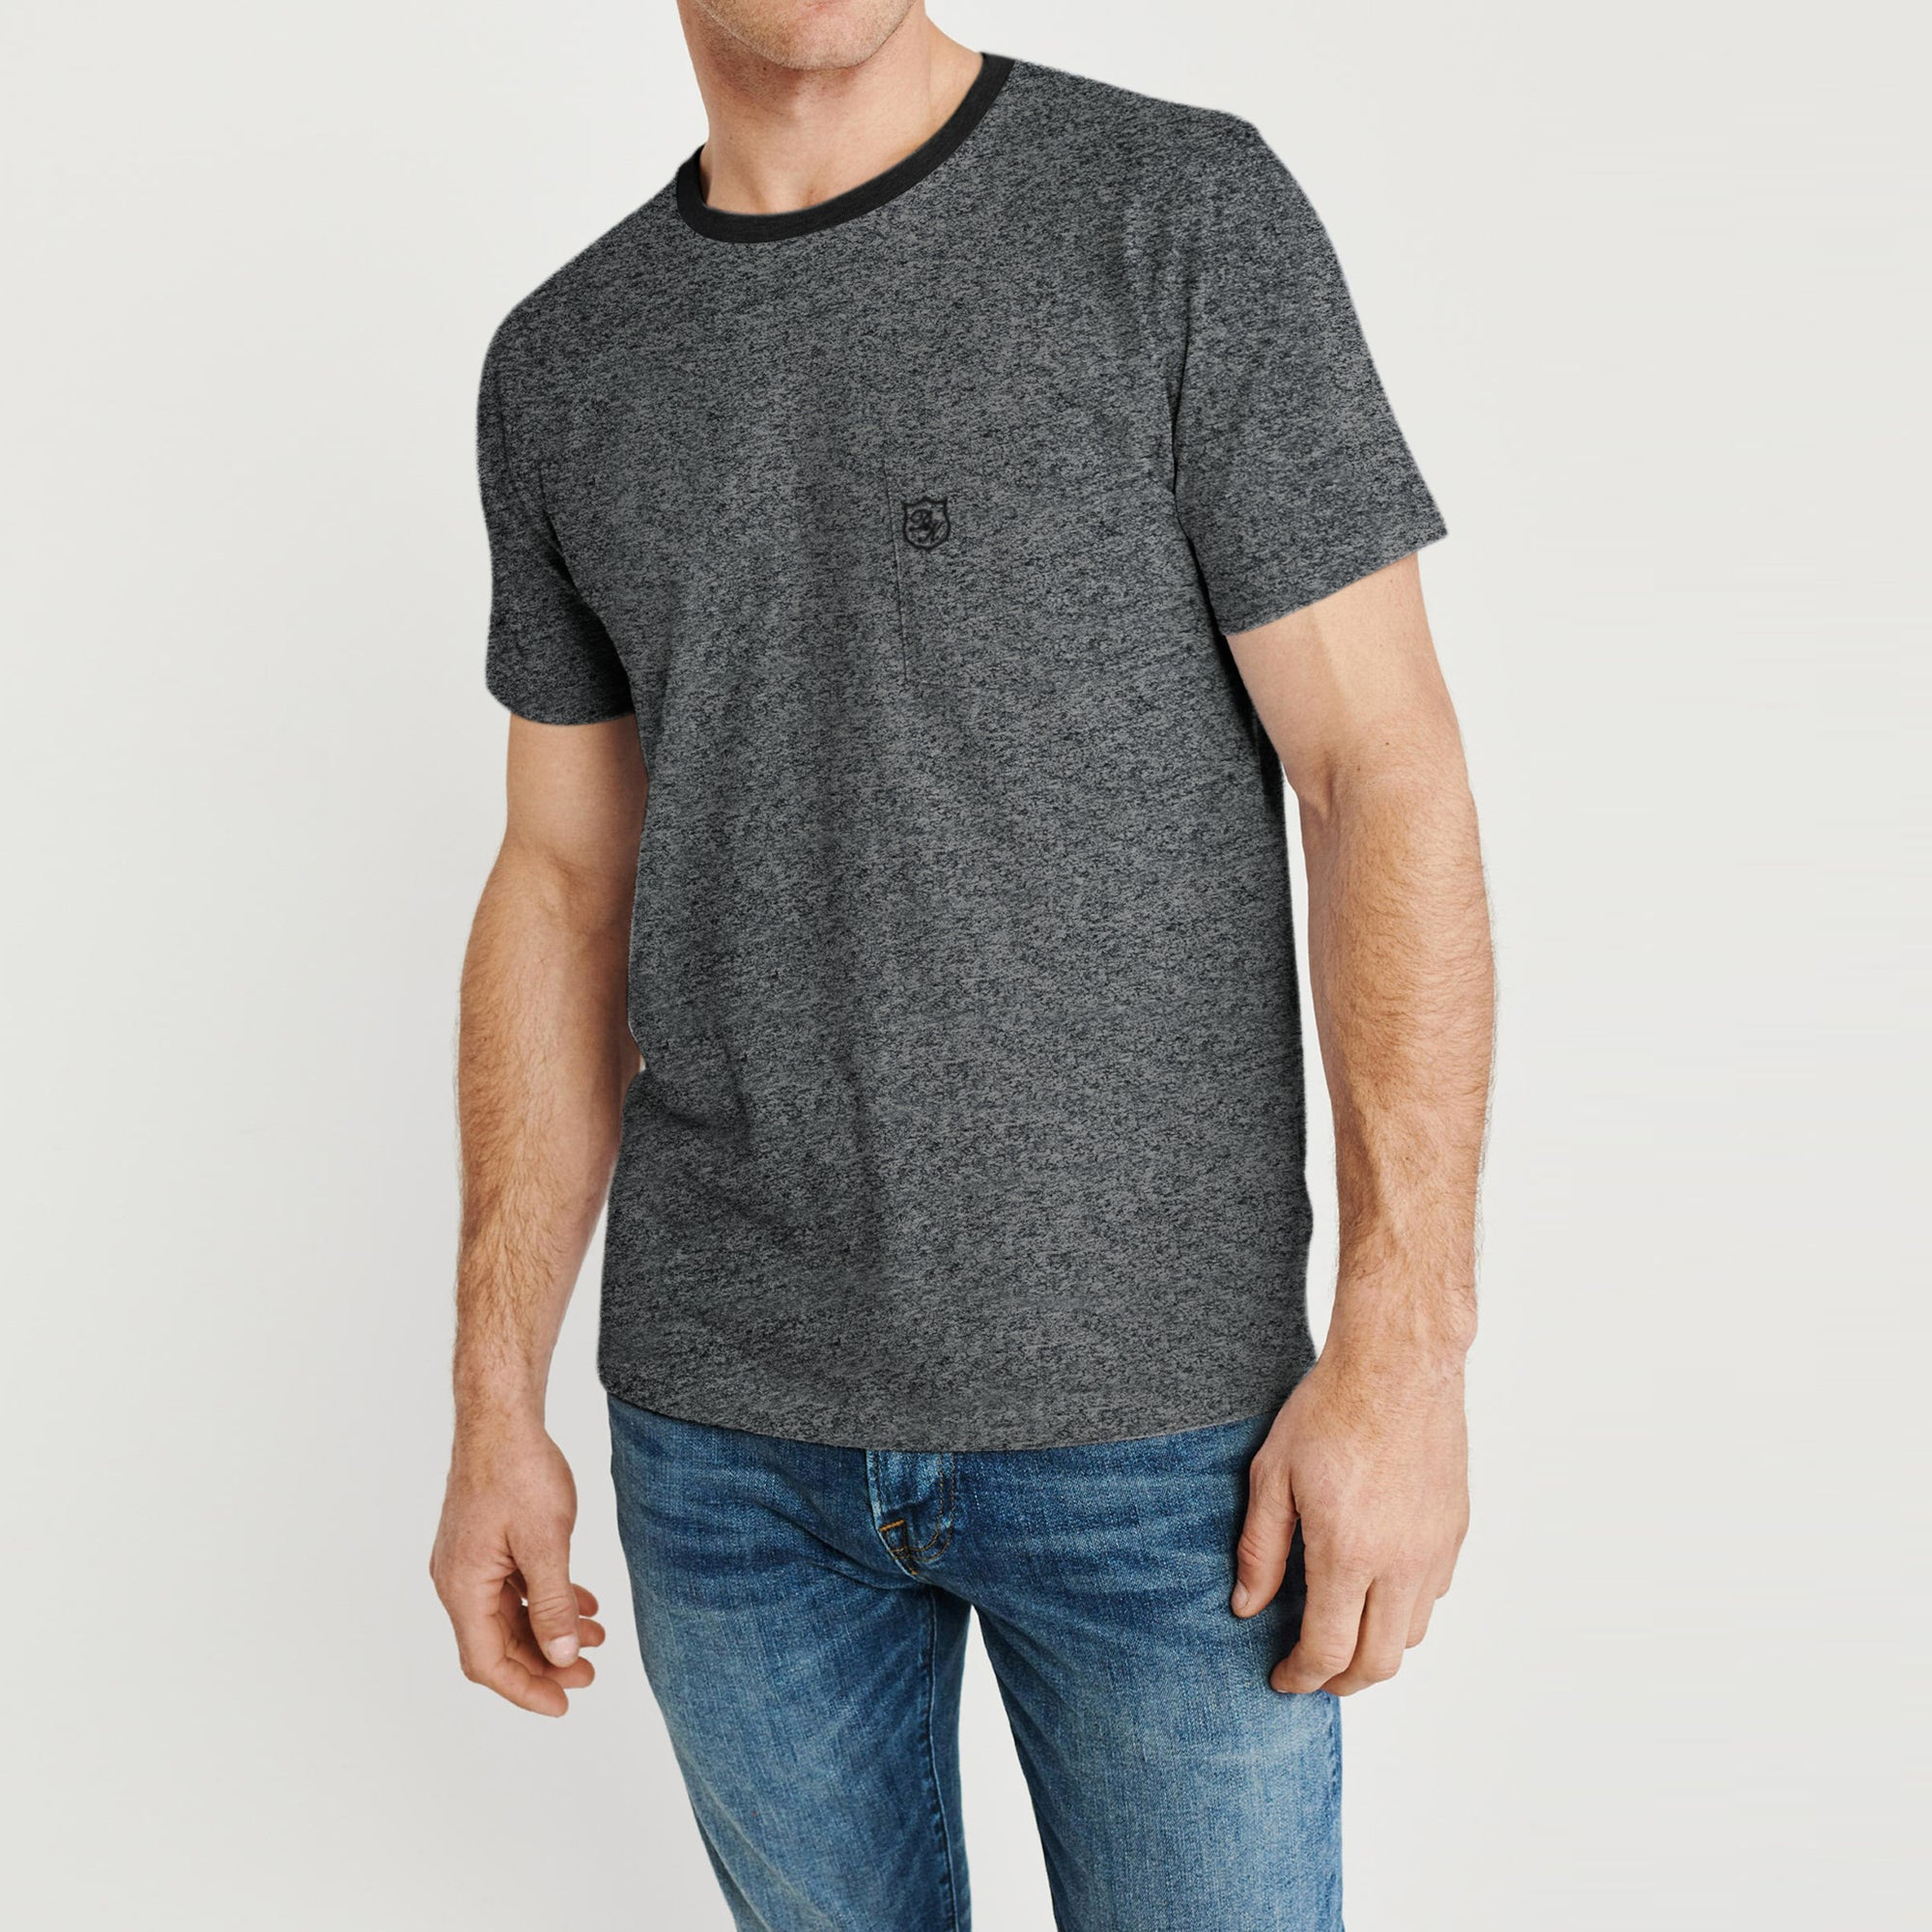 Drift King Crew Neck Single Jersey Tee Shirt For Men-Charcoal Melange-BE8338